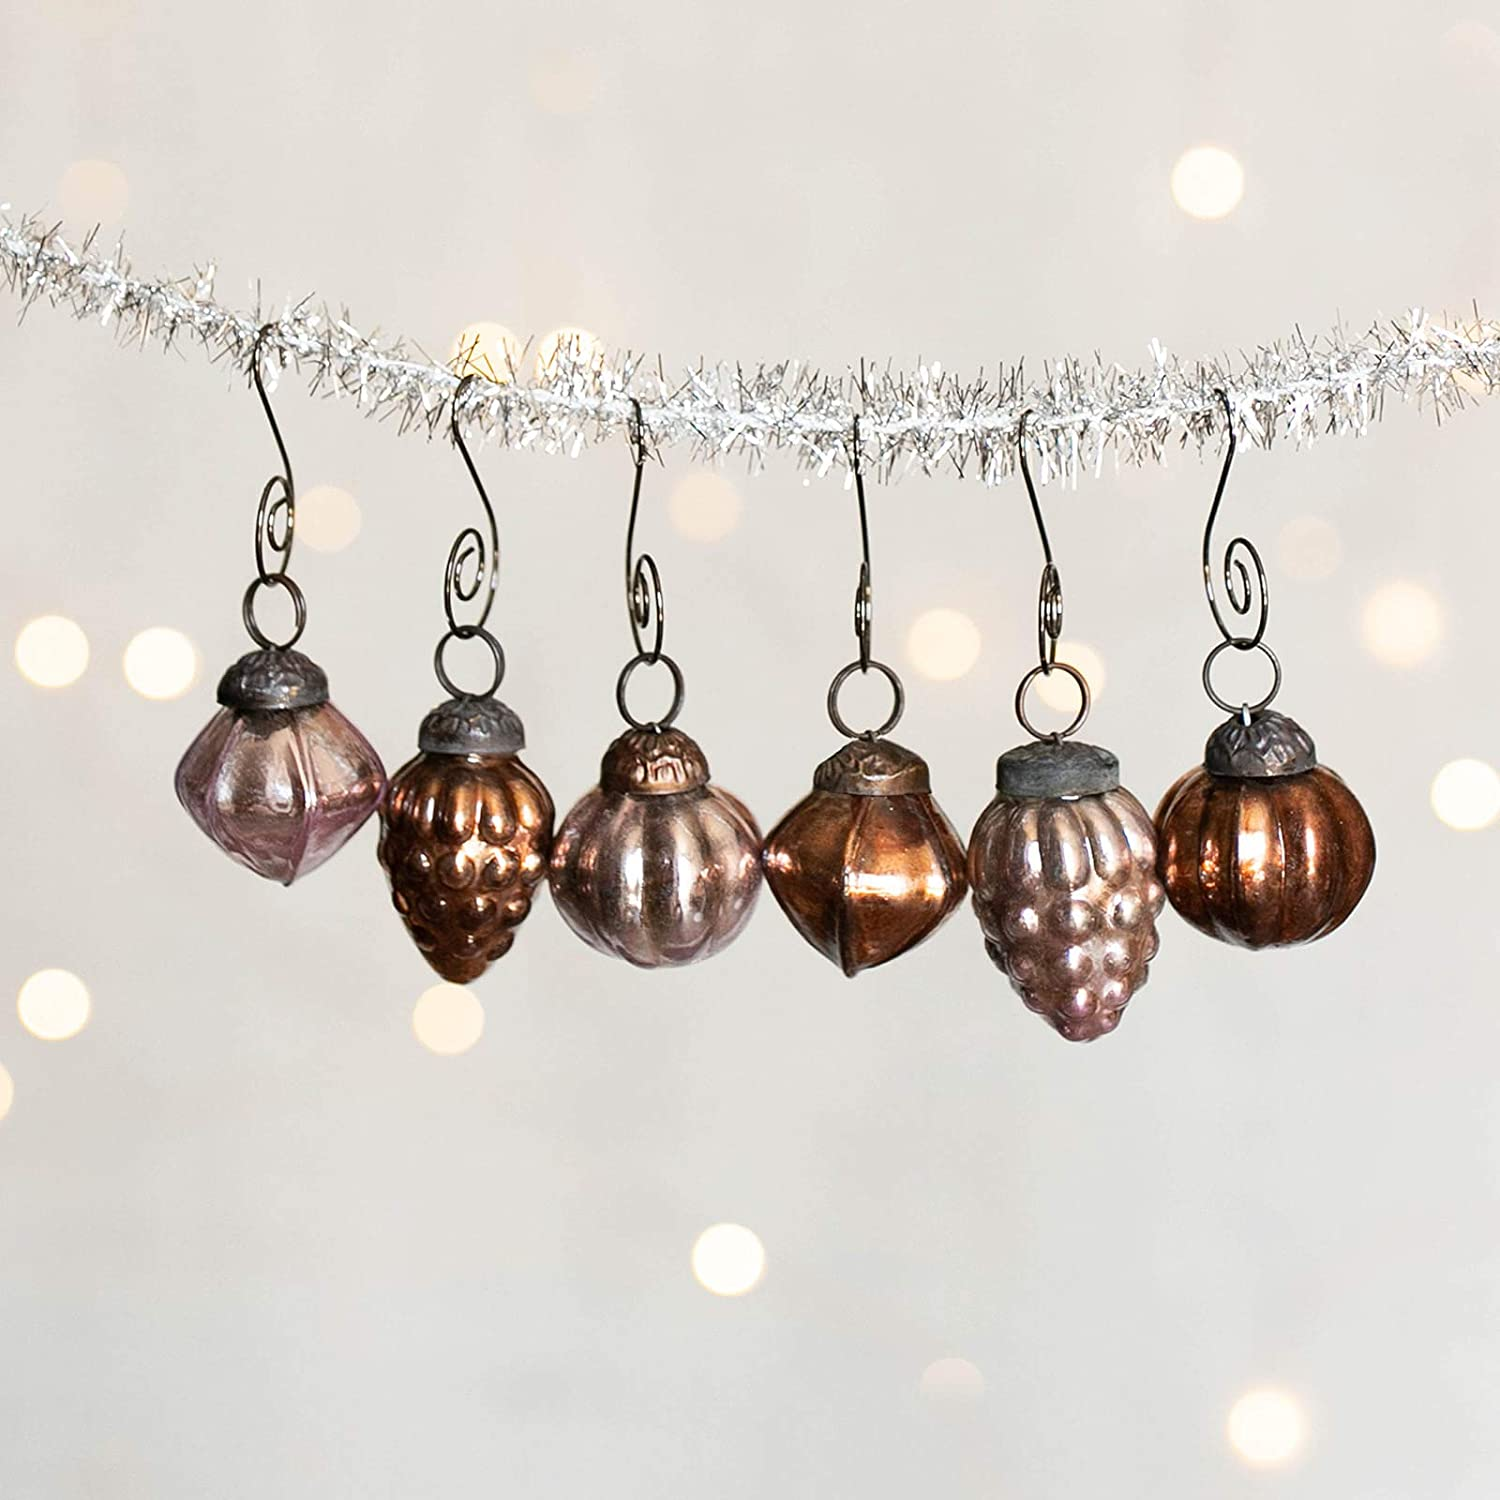 "6 Bronze & Plum Christmas Mercury Ornaments Vintage Antique Look 1.5"" Holiday Decoration Perfect for Your Xmas Tree & Hostess Gift Includes 6 Swirl Hooks"